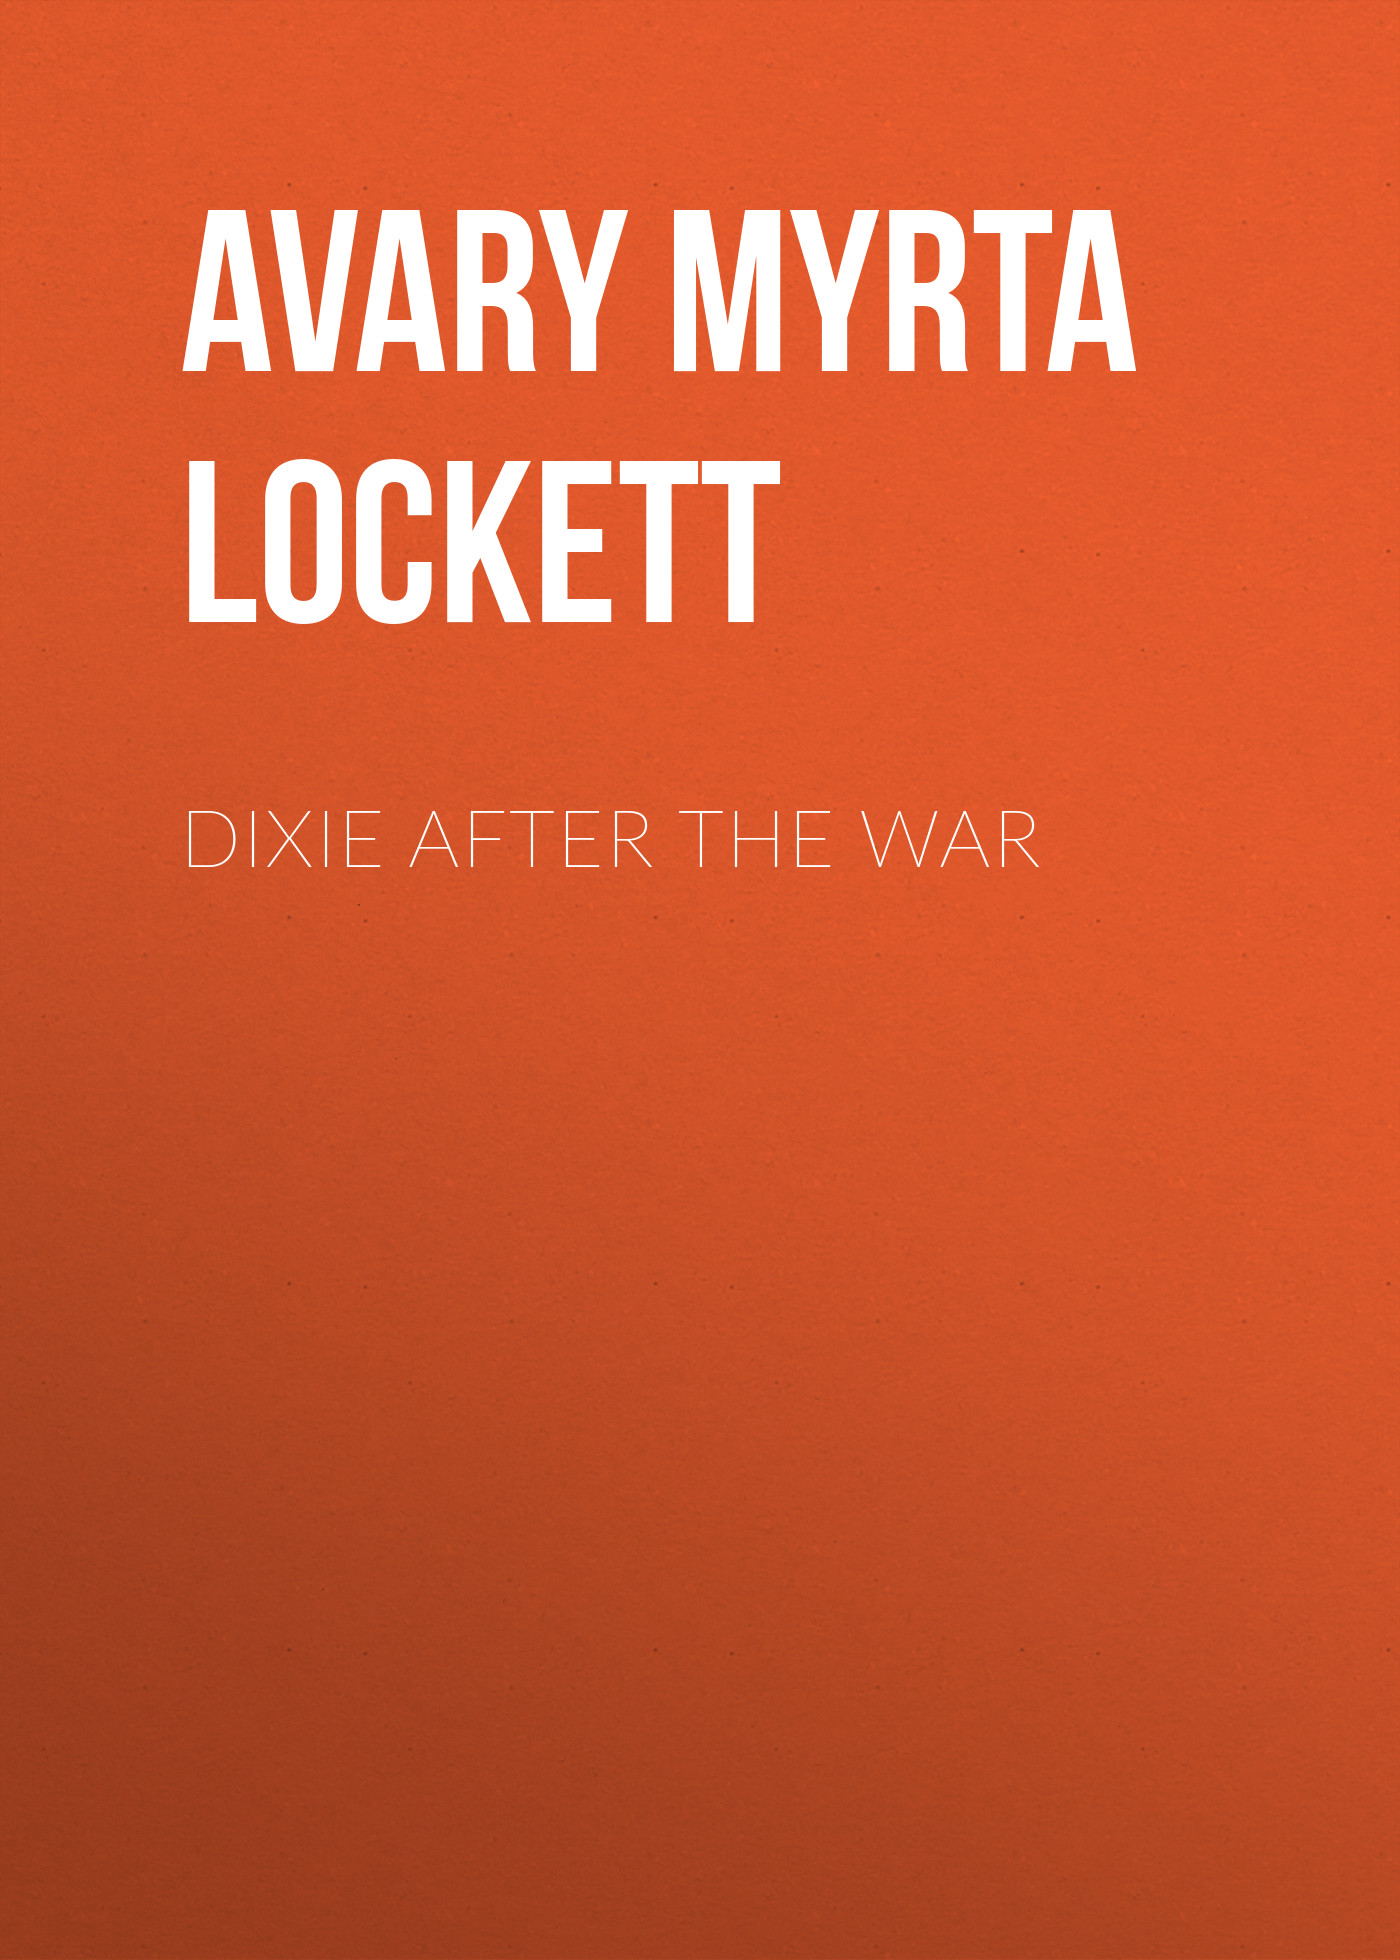 Avary Myrta Lockett Dixie After the War gary moore – after the war lp